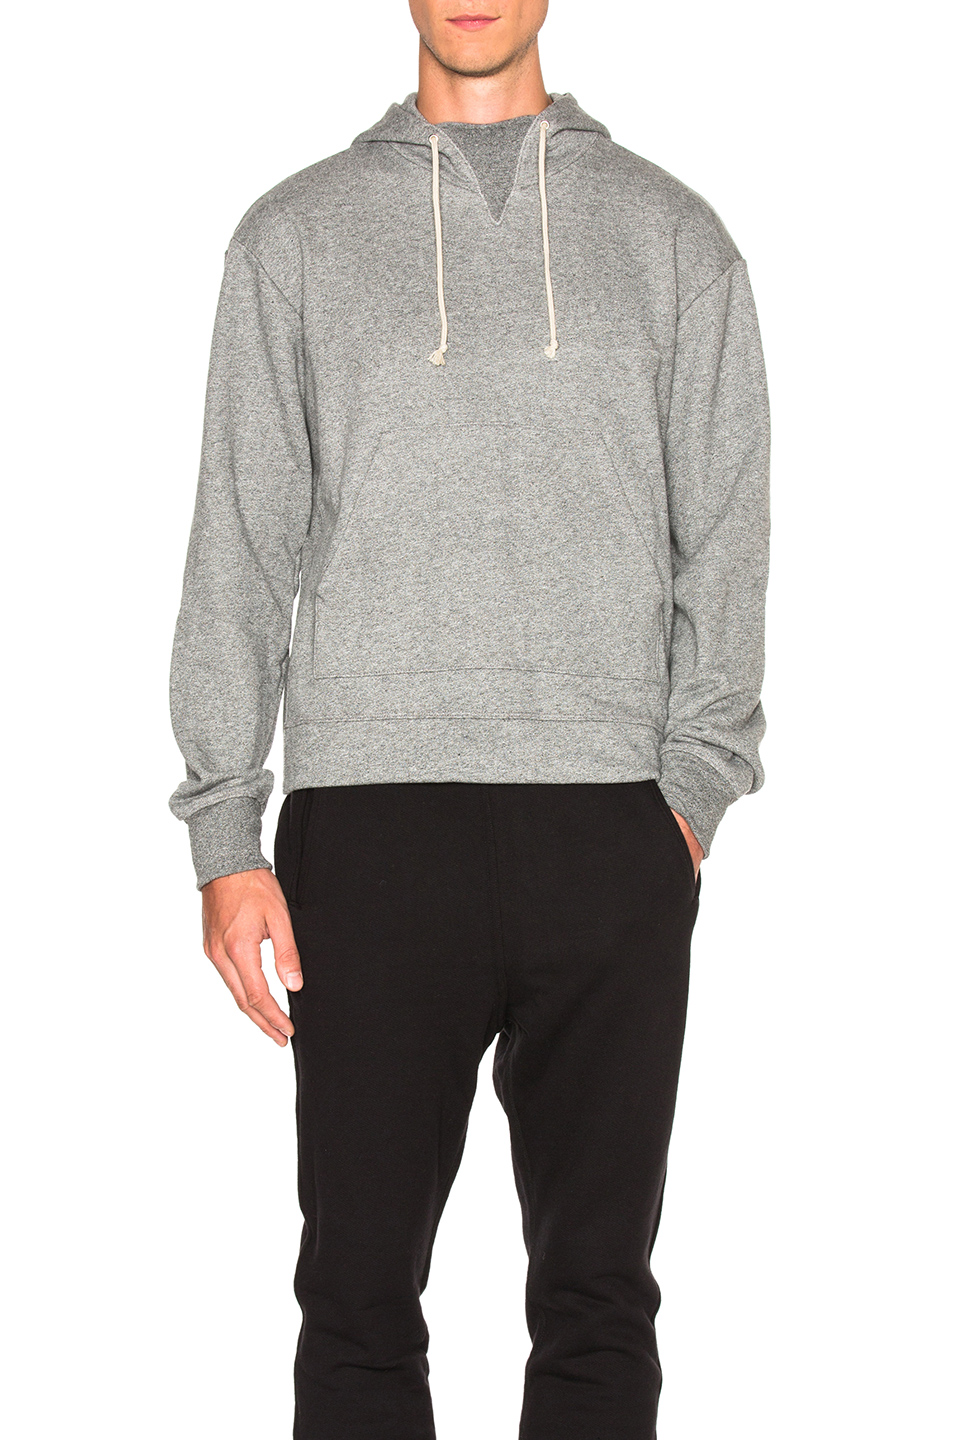 JOHN ELLIOTT Kake Mock Neck Pullover in Gray